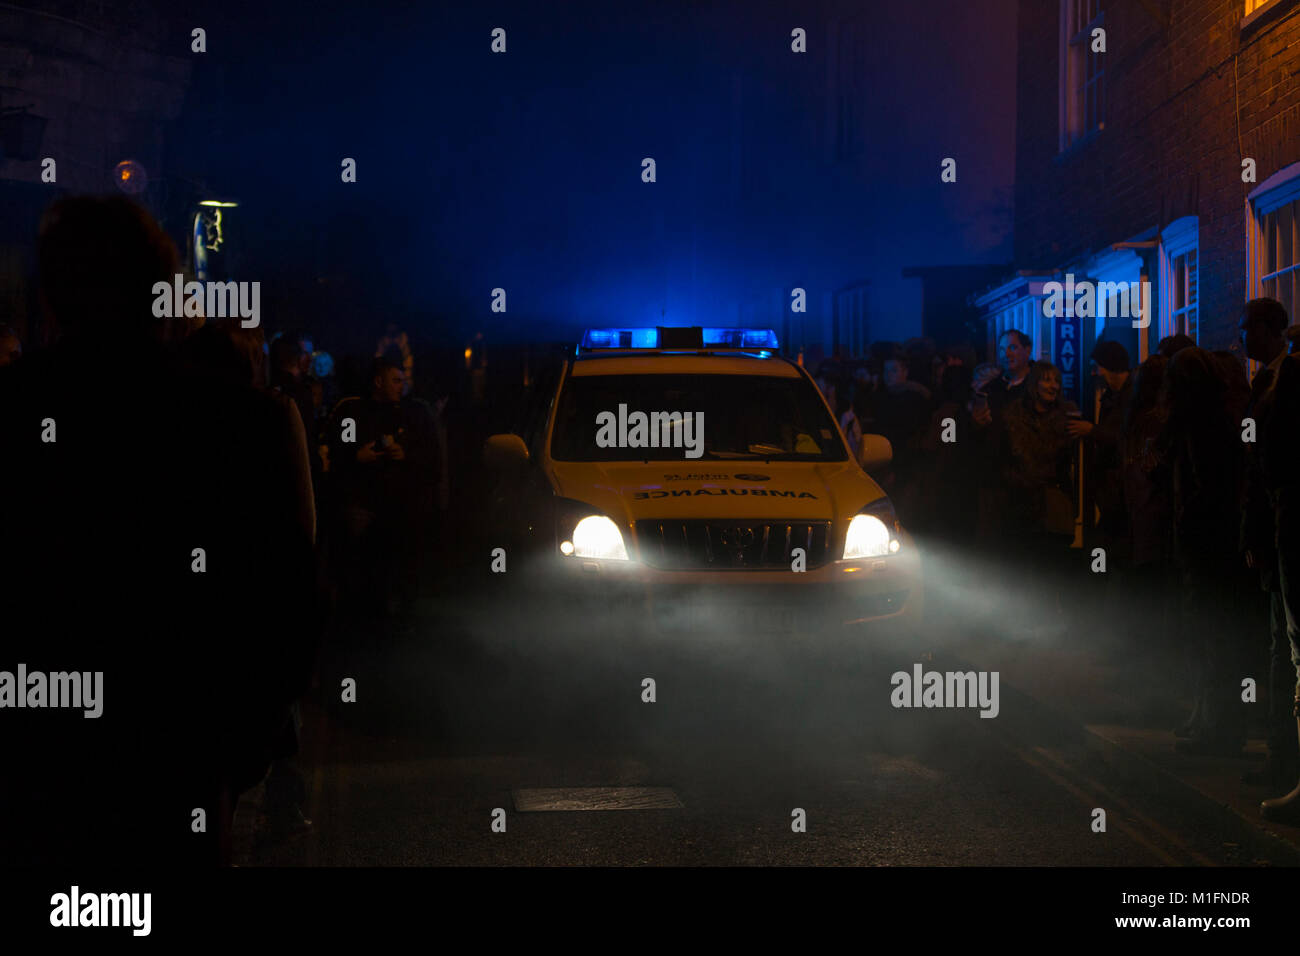 An ambulance makes its way through the crowded streets at night flashing its blue lights. Bonfire night rye 2017, - Stock Image